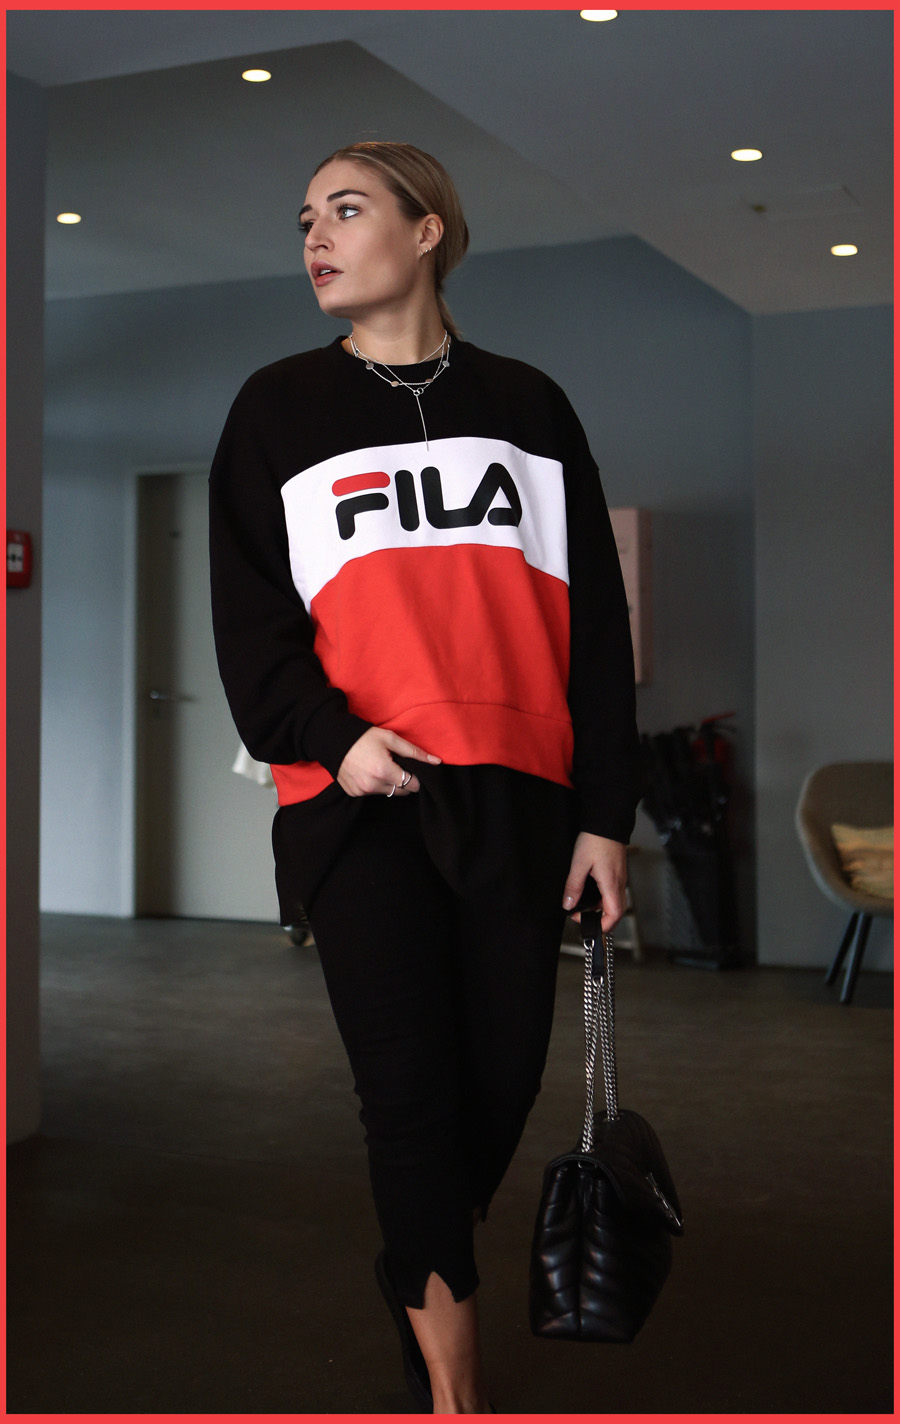 lauralamode-look-outfit-streetstyle-about you-fila-superga-yves saint laurent-bold hotel-fashion-fashionblogger-blogger-munich-muc-fashionblog-muenchen